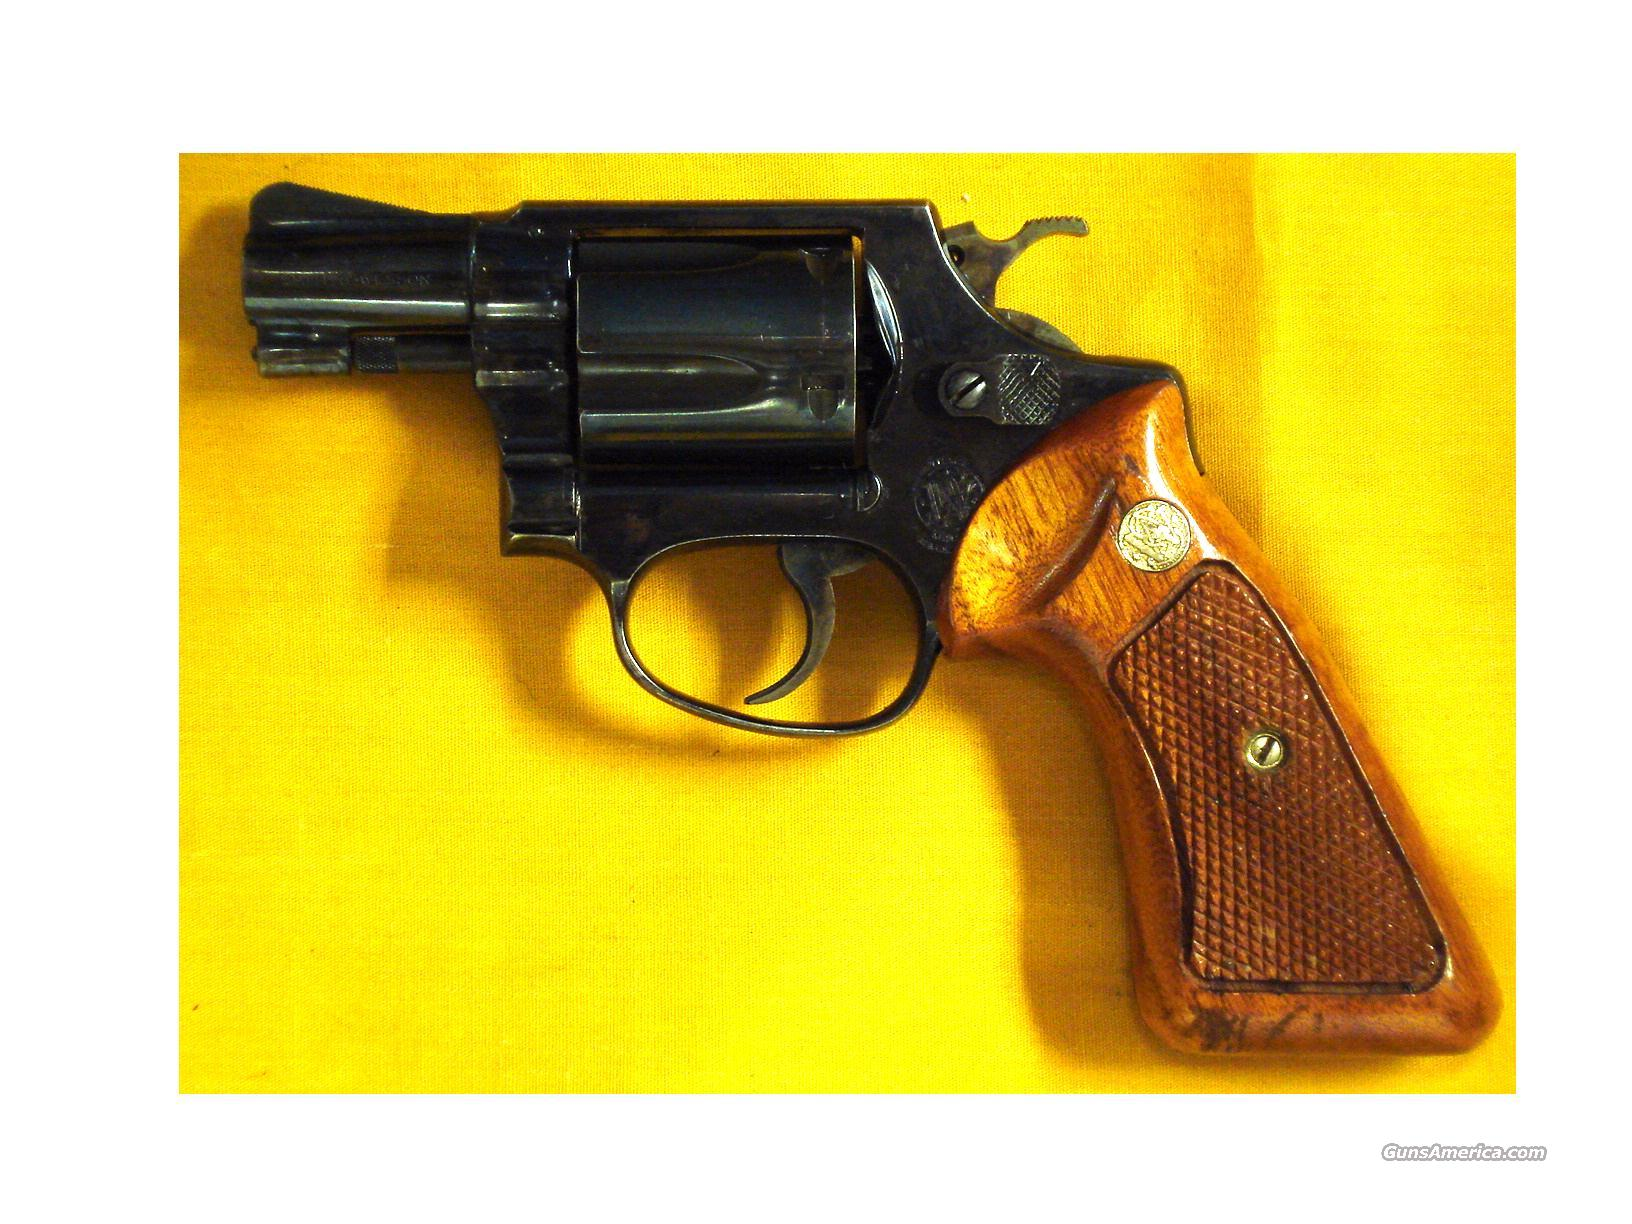 "S&W 36 .38 SPL.2"" PINNED BARREL  Guns > Pistols > Smith & Wesson Revolvers > Full Frame Revolver"